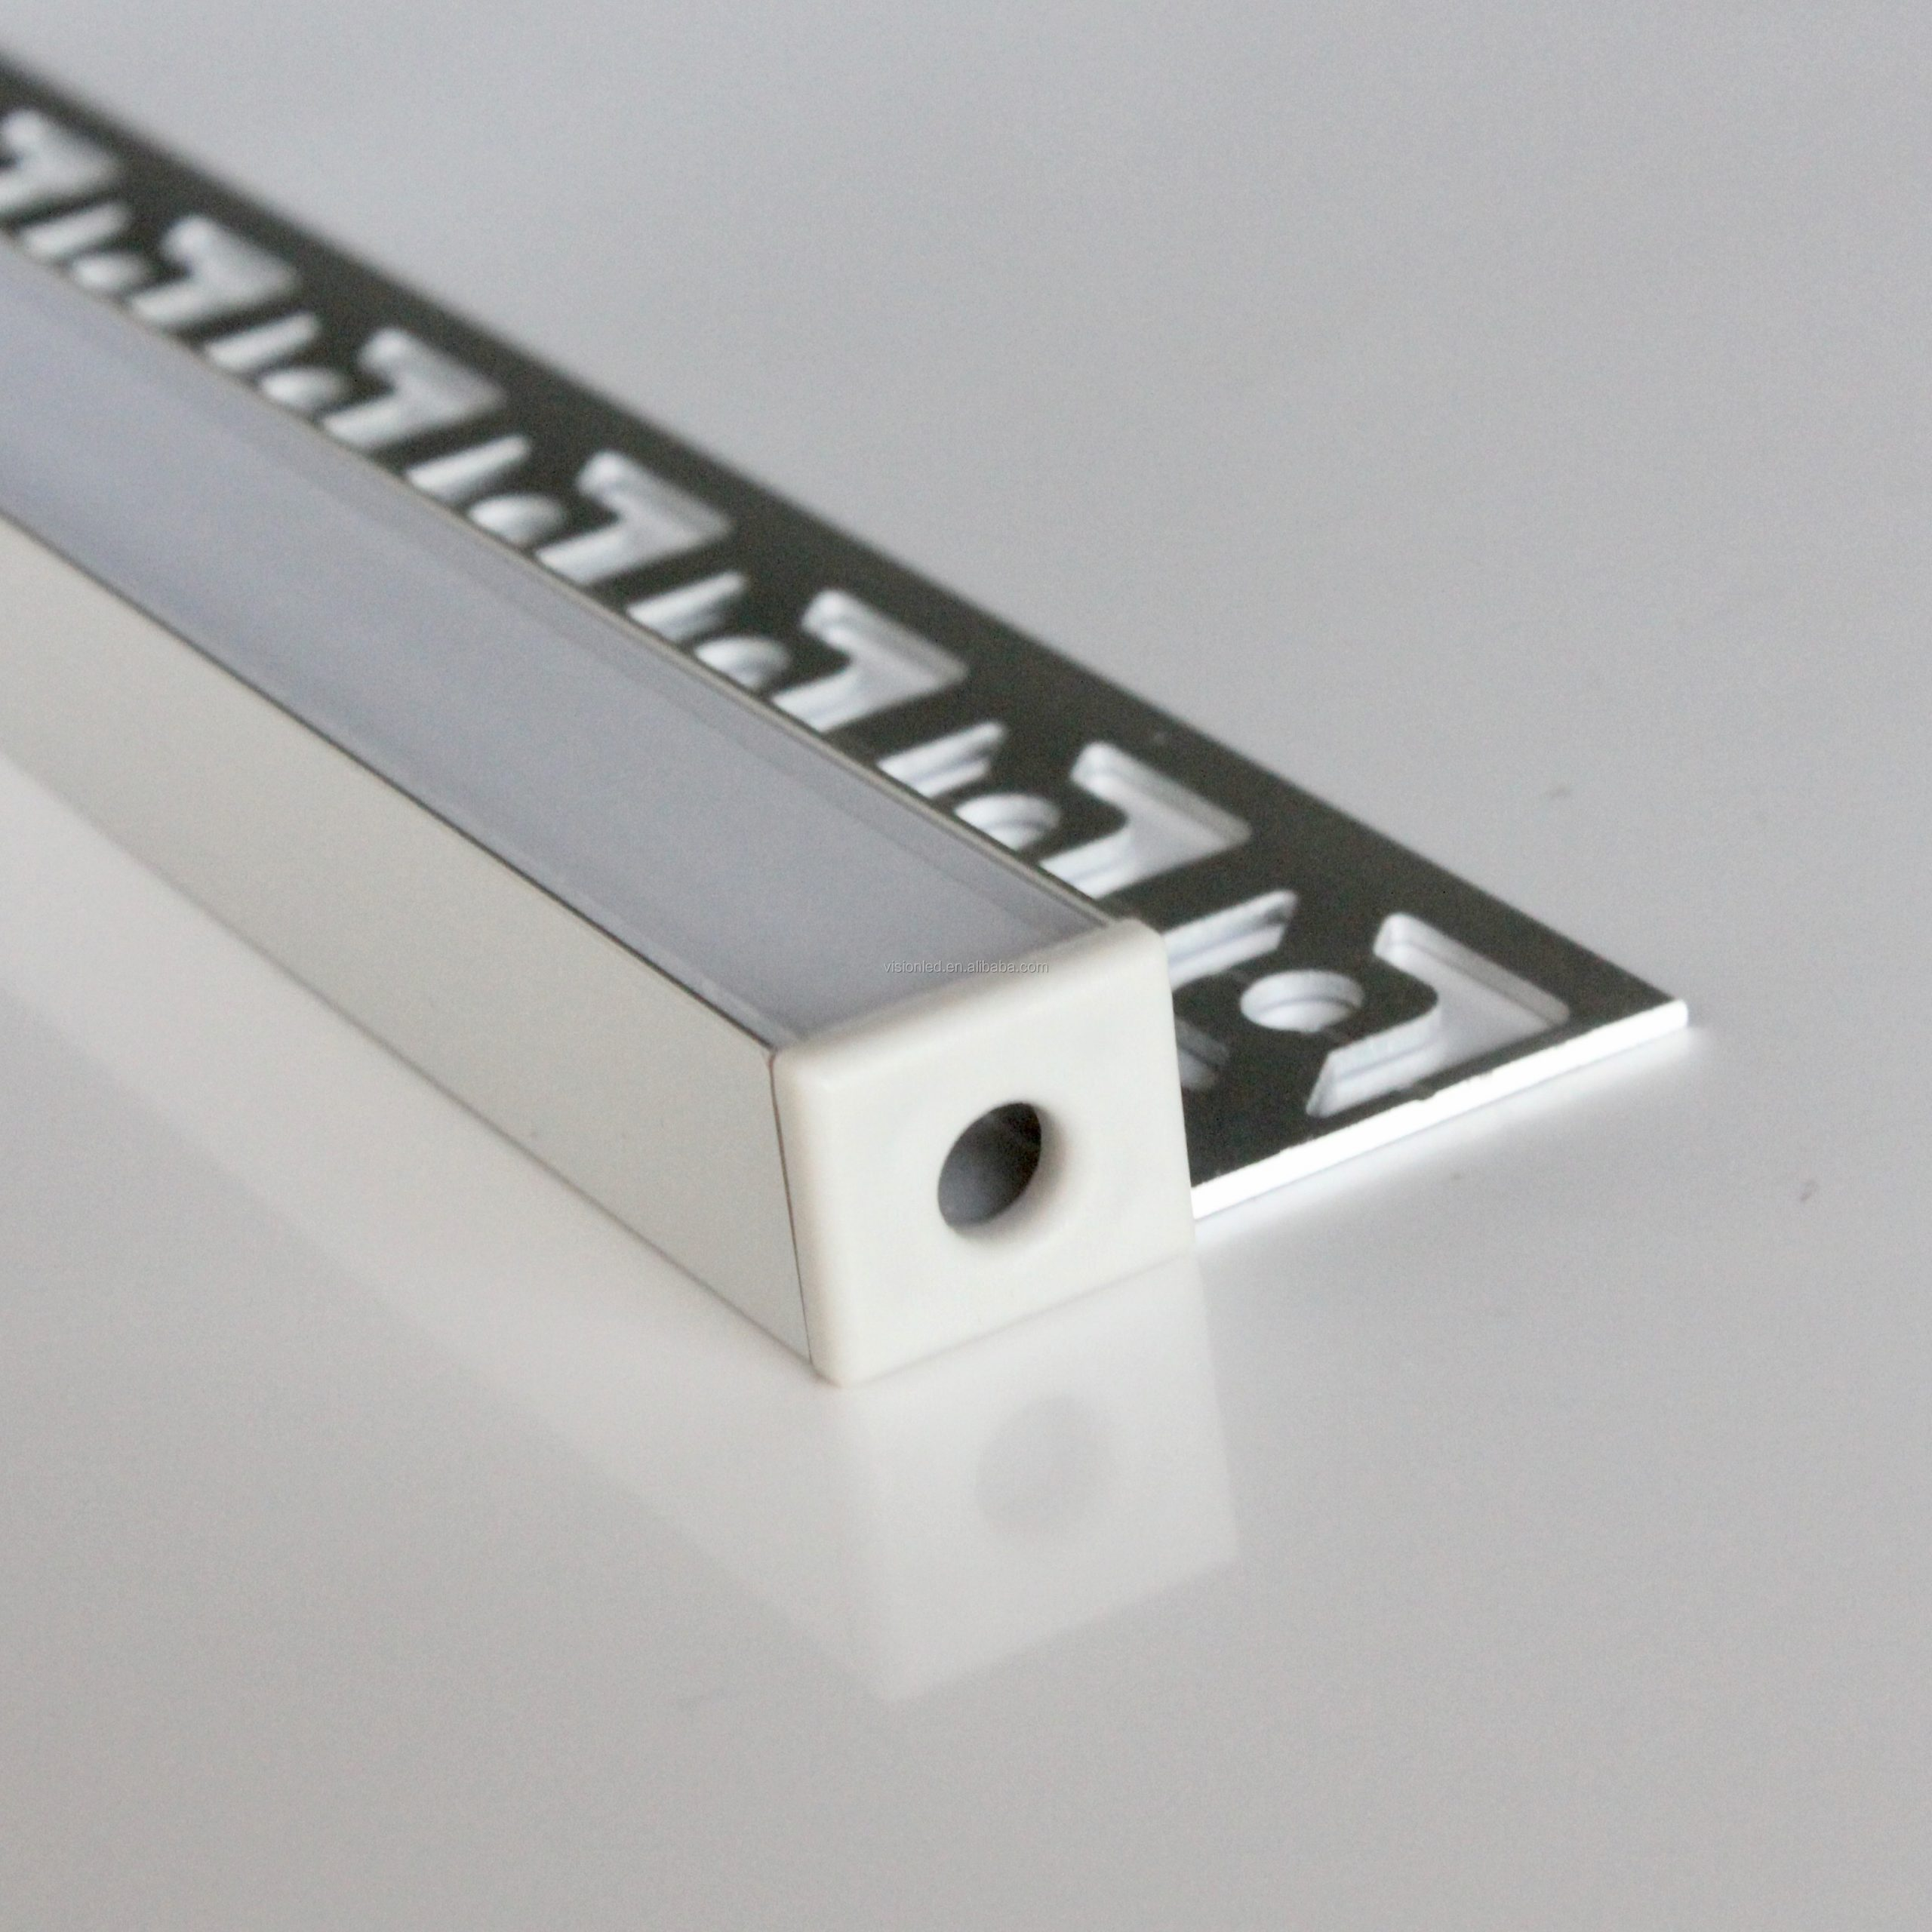 12m(12pcs) a lot, 1m per piece, aluminum extrusion profiles for led strips display with milky diffuse cover